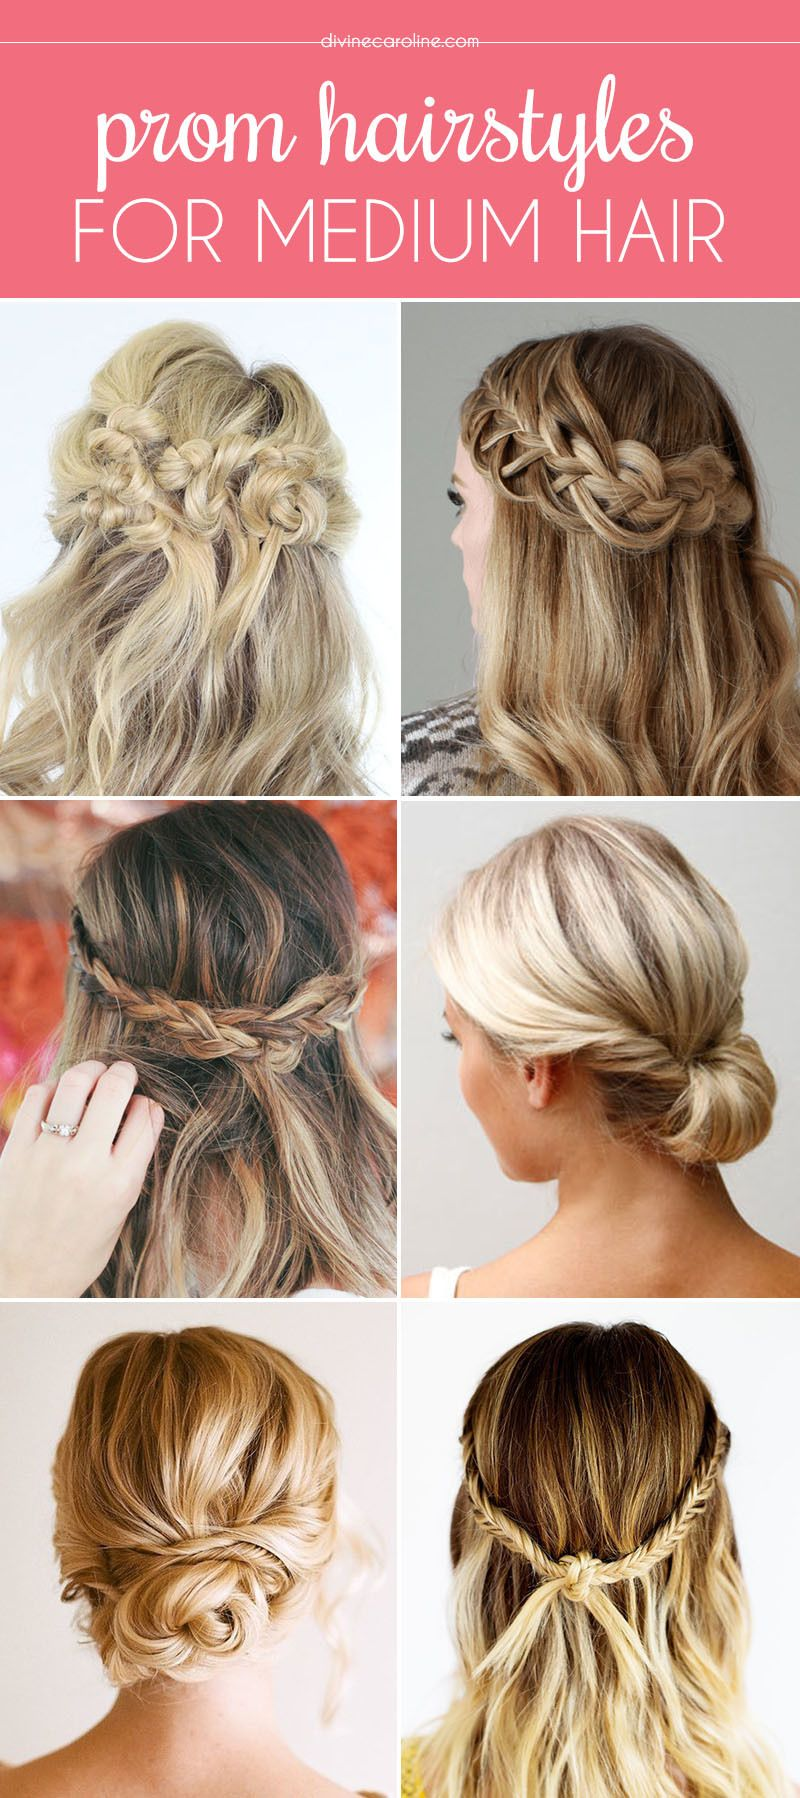 our favorite prom hairstyles for medium-length hair